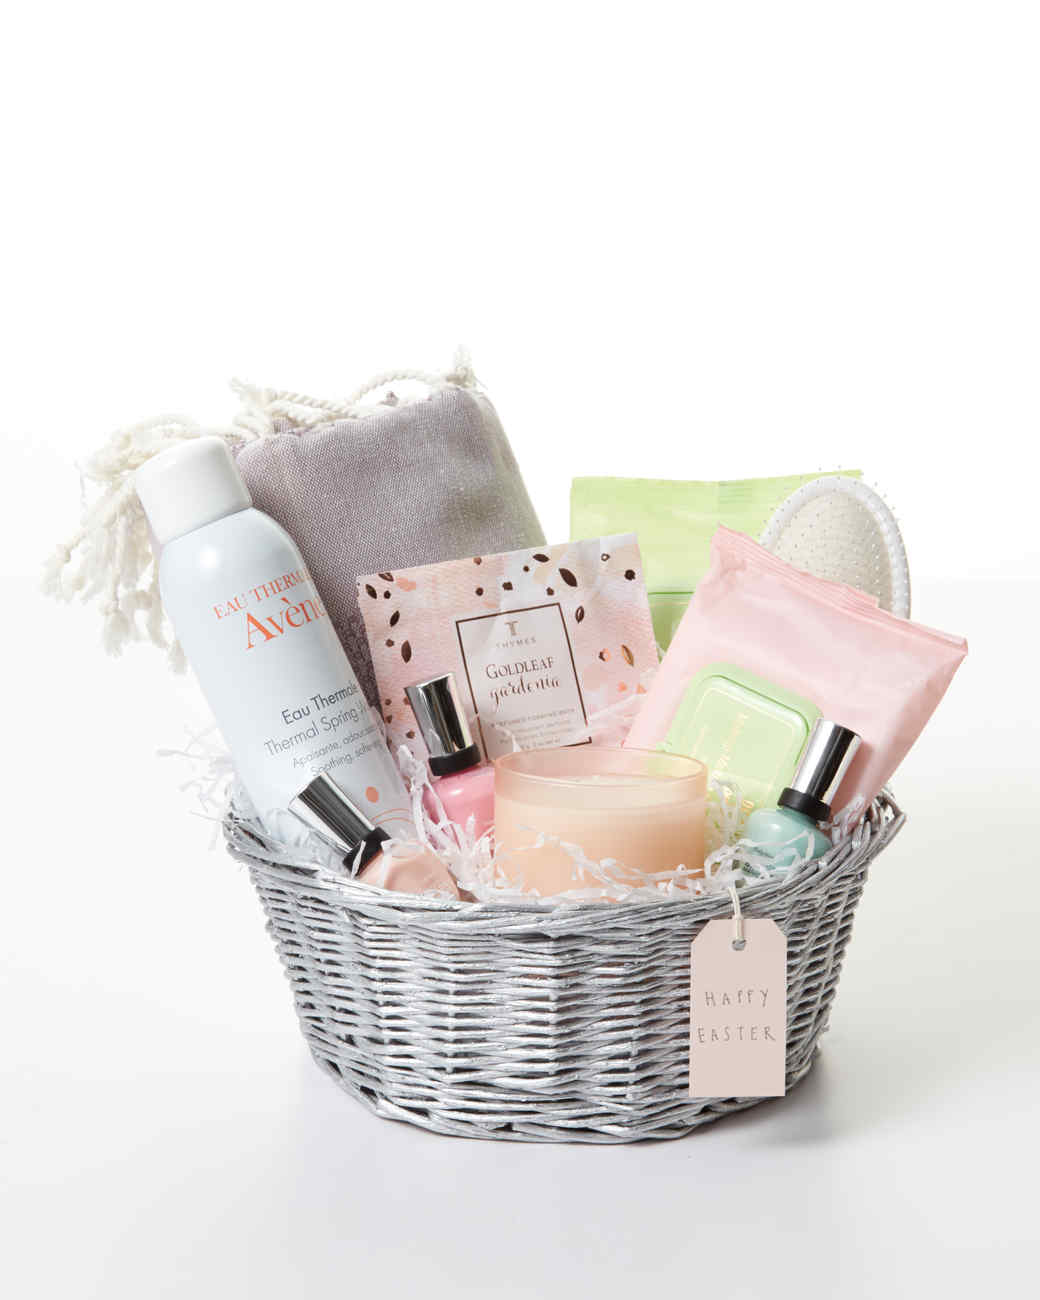 10 lavish easter basket ideas for a spa day at home martha stewart 10 lavish easter basket ideas for a spa day at home xflitez Images